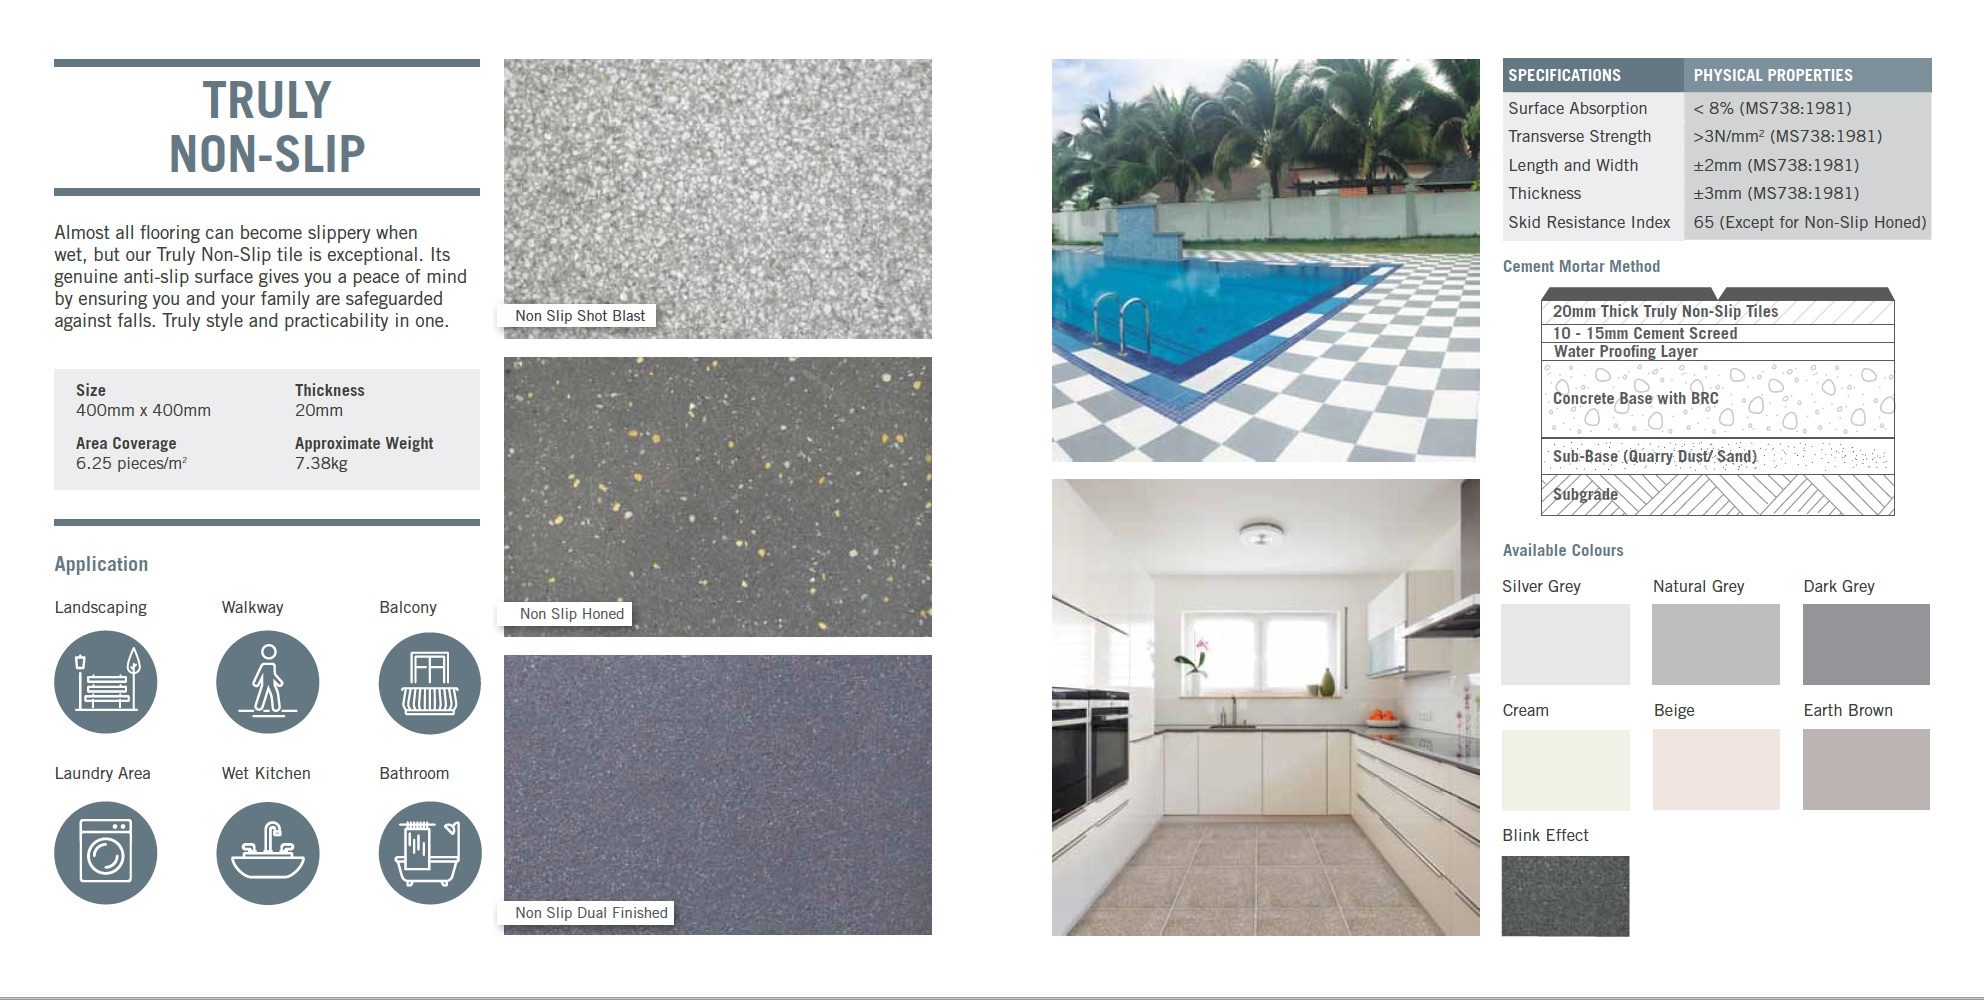 Concrete Tiles Brochure Image